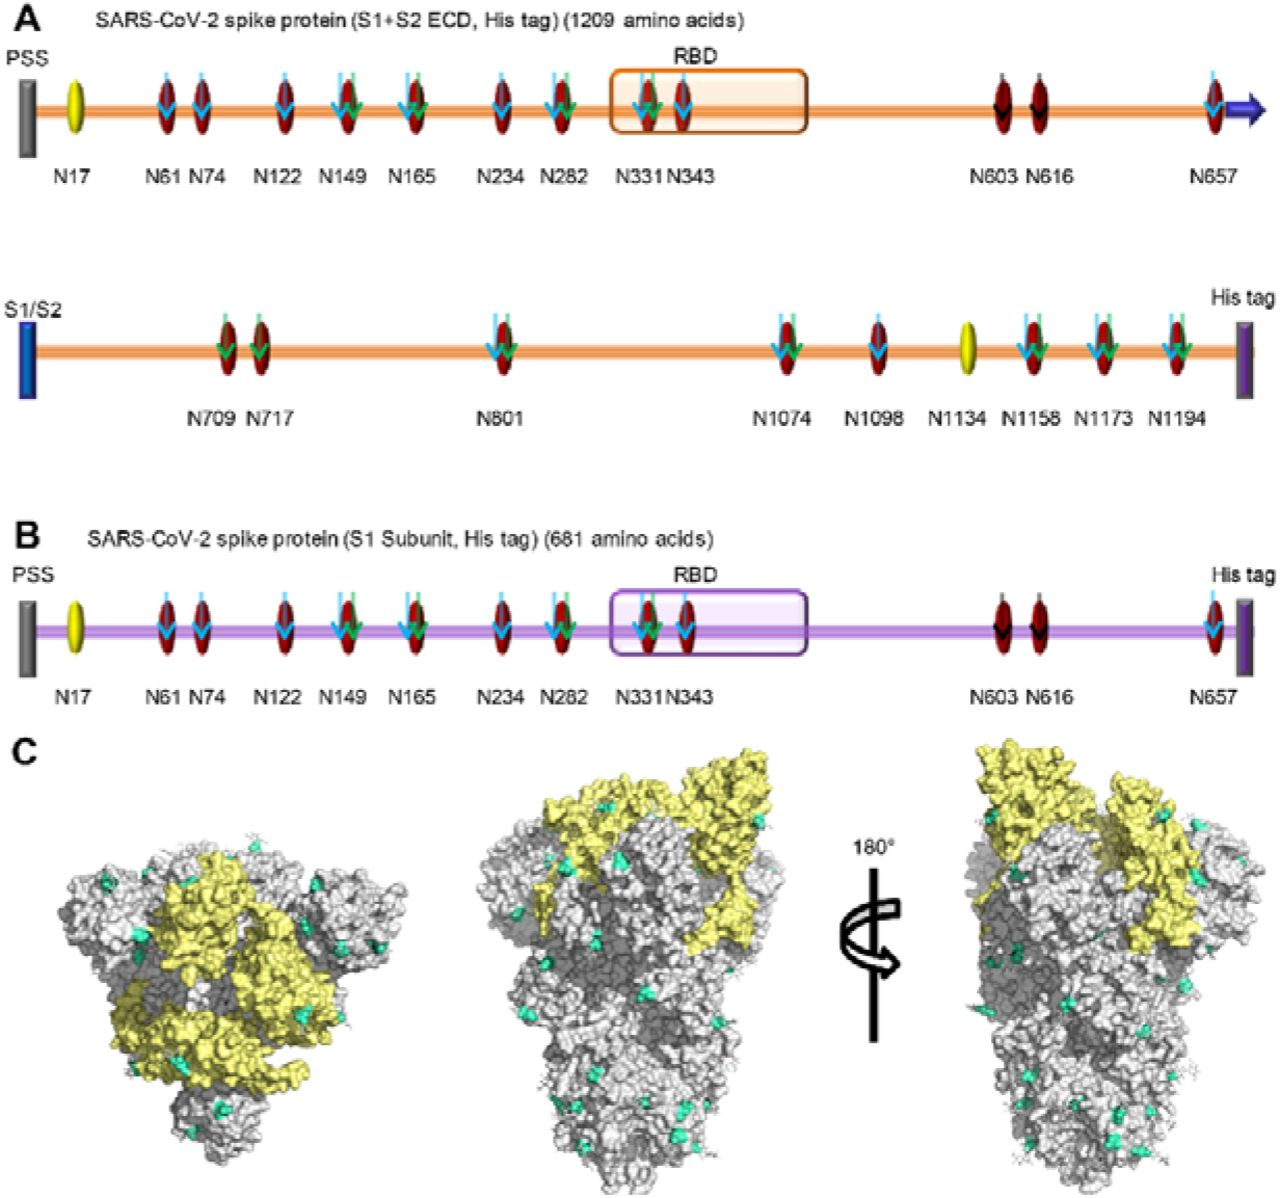 N-glycosites characterization of SARS-CoV-2 S proteins. (A and B) N-glycosites of the recombinant SARS-CoV-2 S protein or subunits expressed in insect cells (A) and human cells (B). PSS: putative signal sequence; RBD: receptor-binding domain; S1/S2: S1/S2 protease cleavage site; Oval: potential N-glycosite; Yellow oval: ambiguously assigned N-glycosite; Red oval: unambiguously assigned N-glycosite; Blue arrow: unambiguously assigned N-glycosite using trypsin digestion; Green arrow: unambiguously assigned N-glycosite using Glu-C digestion; Yellow arrow: unambiguously assigned N-glycosite using the combination of trypsin and Glu-C digestion. The unambiguously glycosite was determined by at least twice identification within each digestion list in Table S1 and Table S2. (C) N-glycosites were demonstrated in the three-dimensional structure of the SARS-CoV-2 S protein trimers (PDB code: 6VSB). RBDs, yellow; N-glycosites, blue.